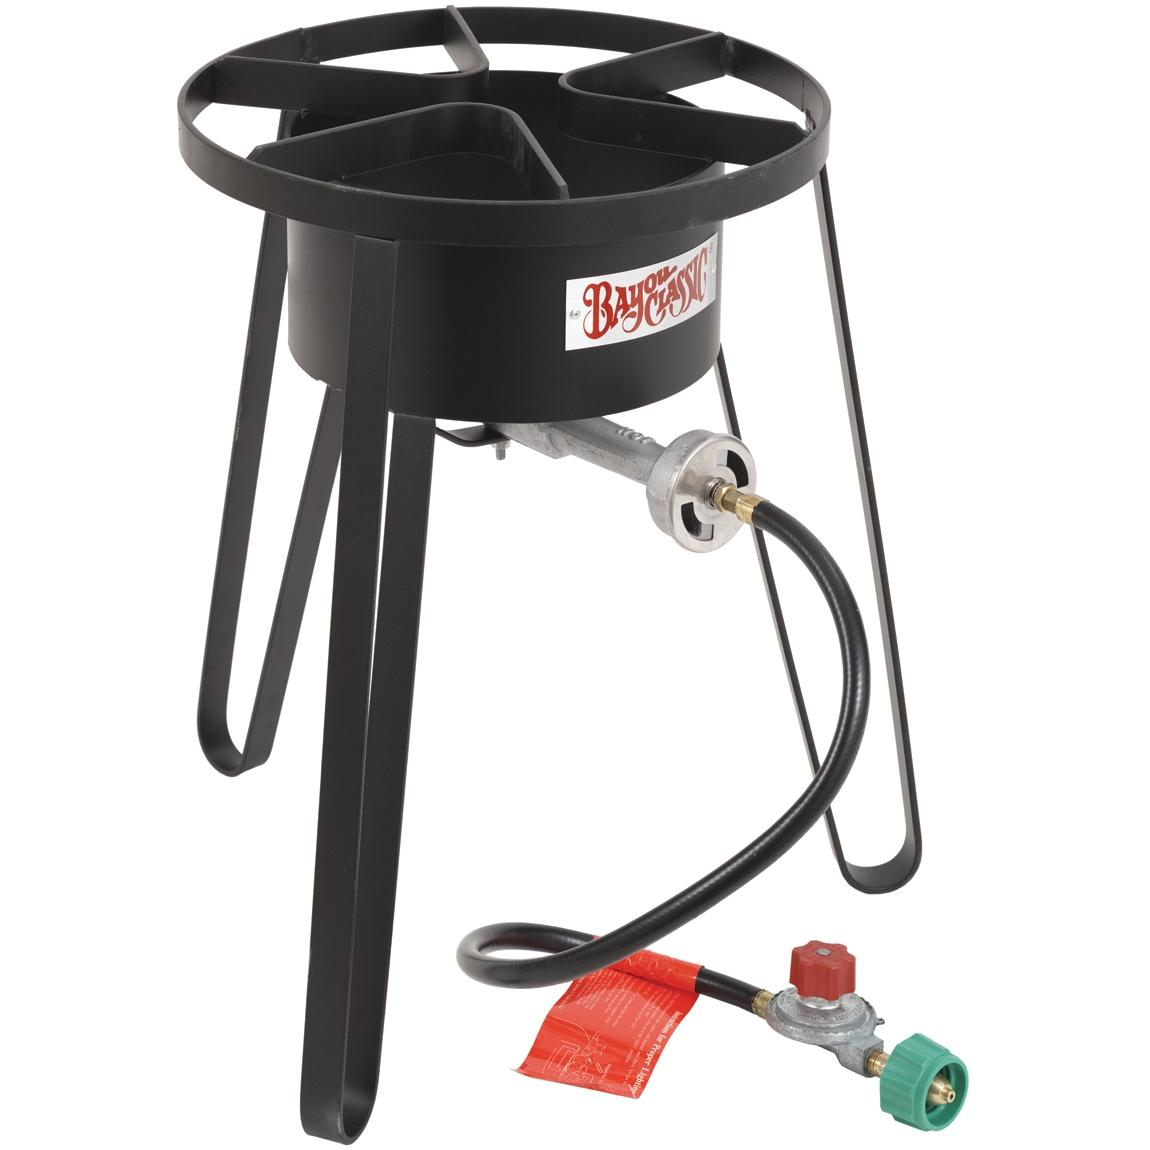 Bayou Classic Stoves With Full Windscreen On Tall Stand High Pressure Outdoor Stove